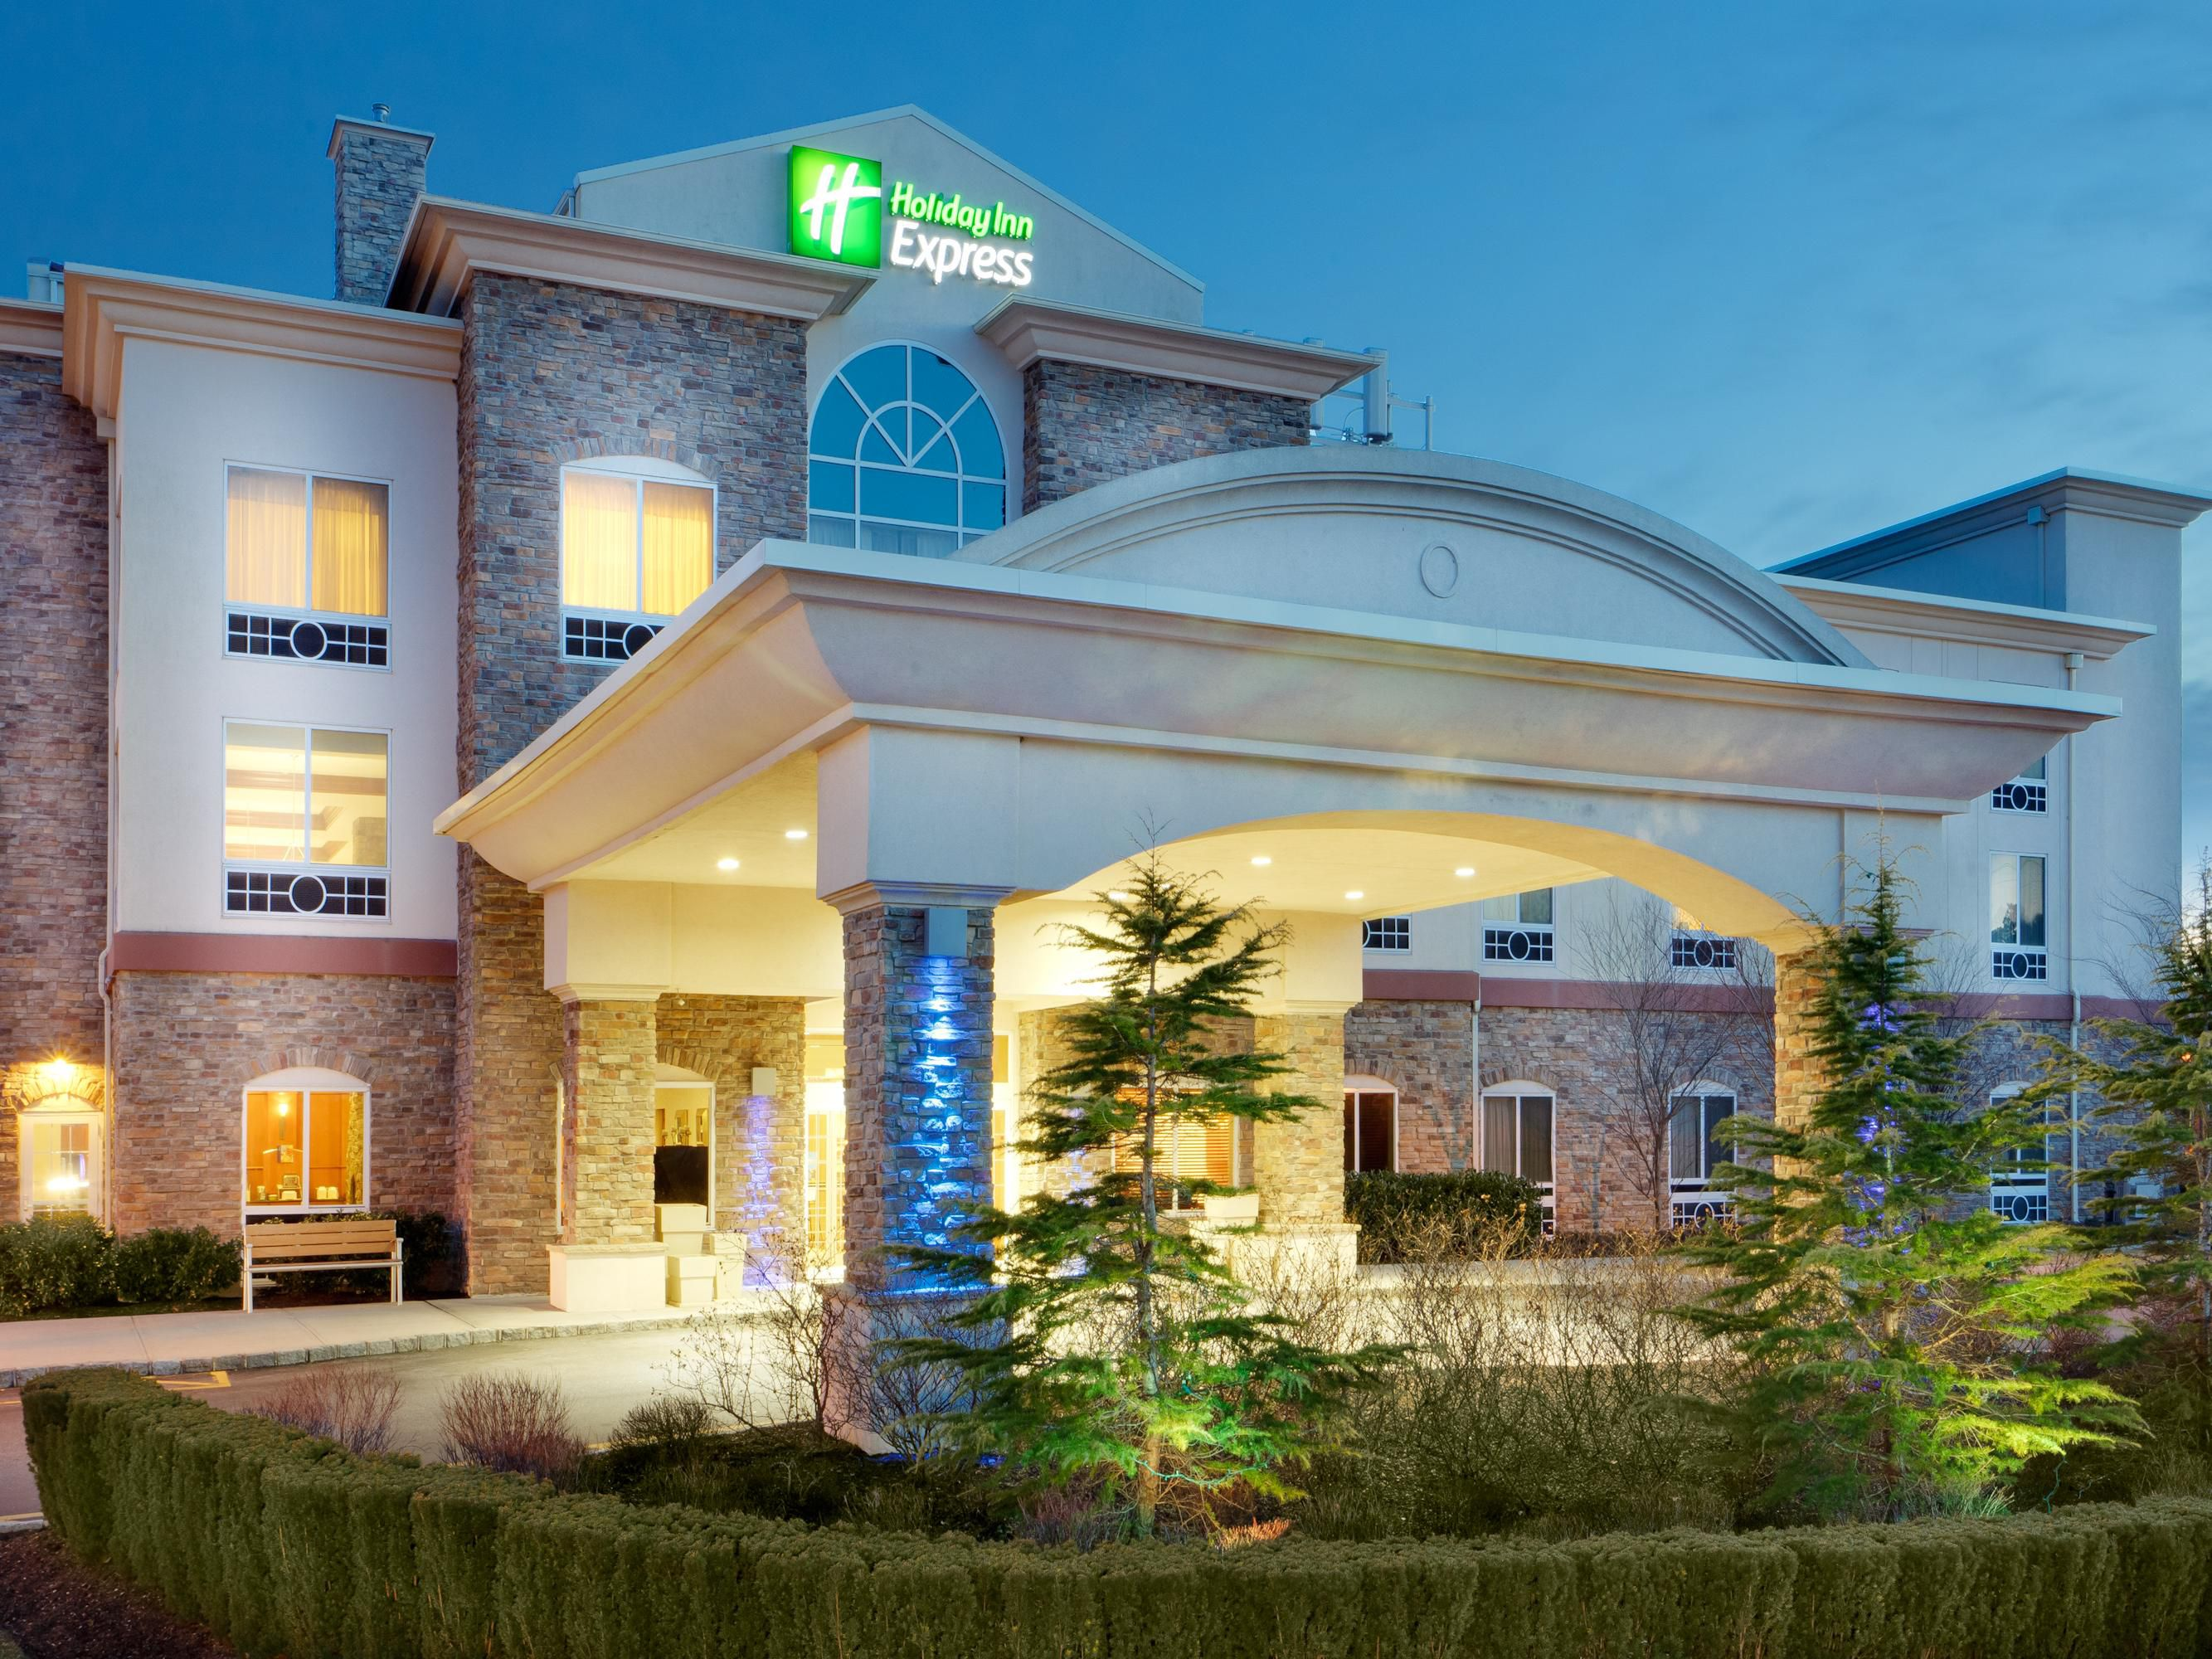 Holiday Inn Express East End, Riverhead, NY - Hotel Exterior